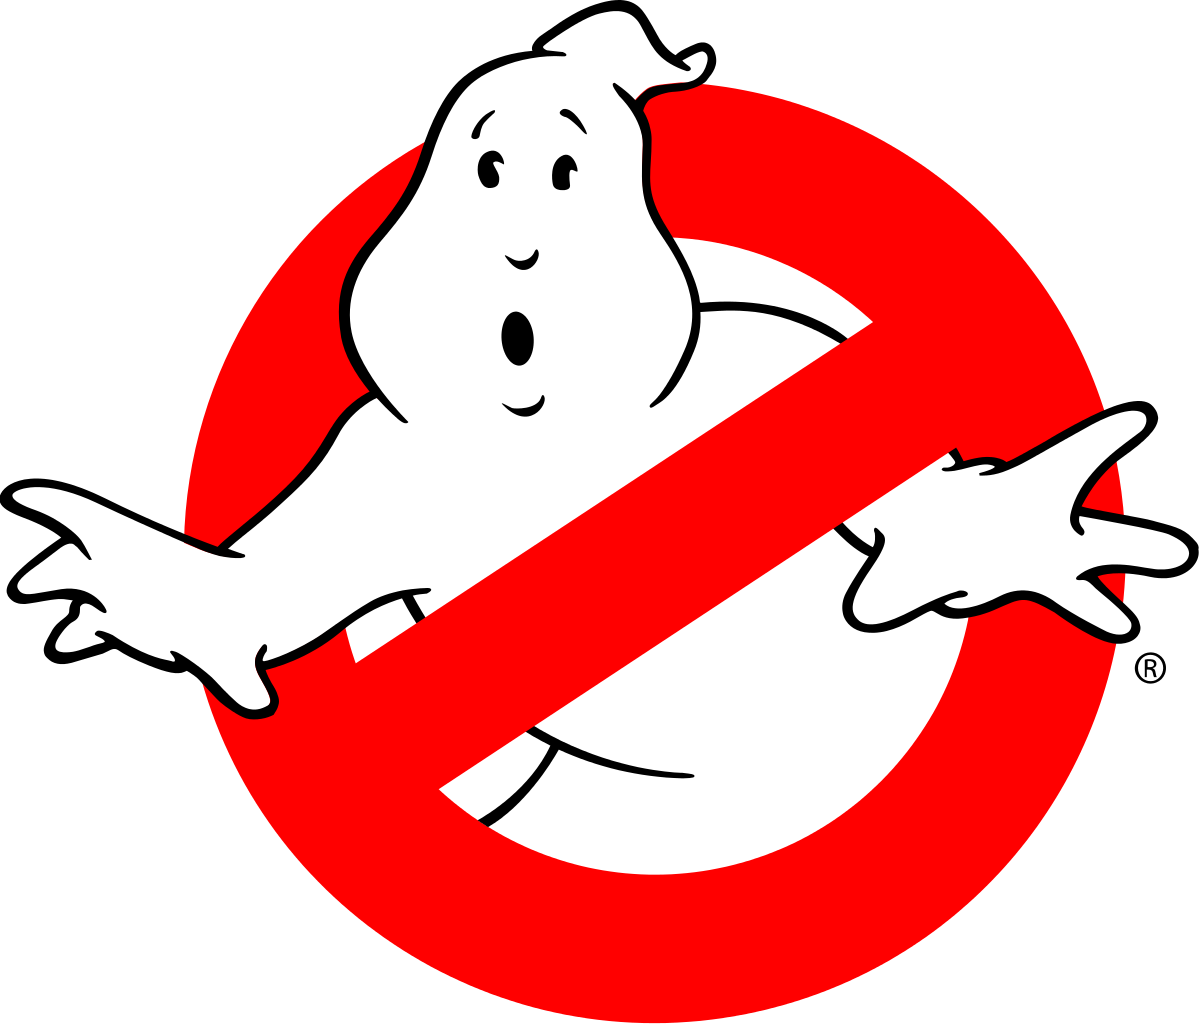 Ghostbusters 2 logo png. Image svg epic rap